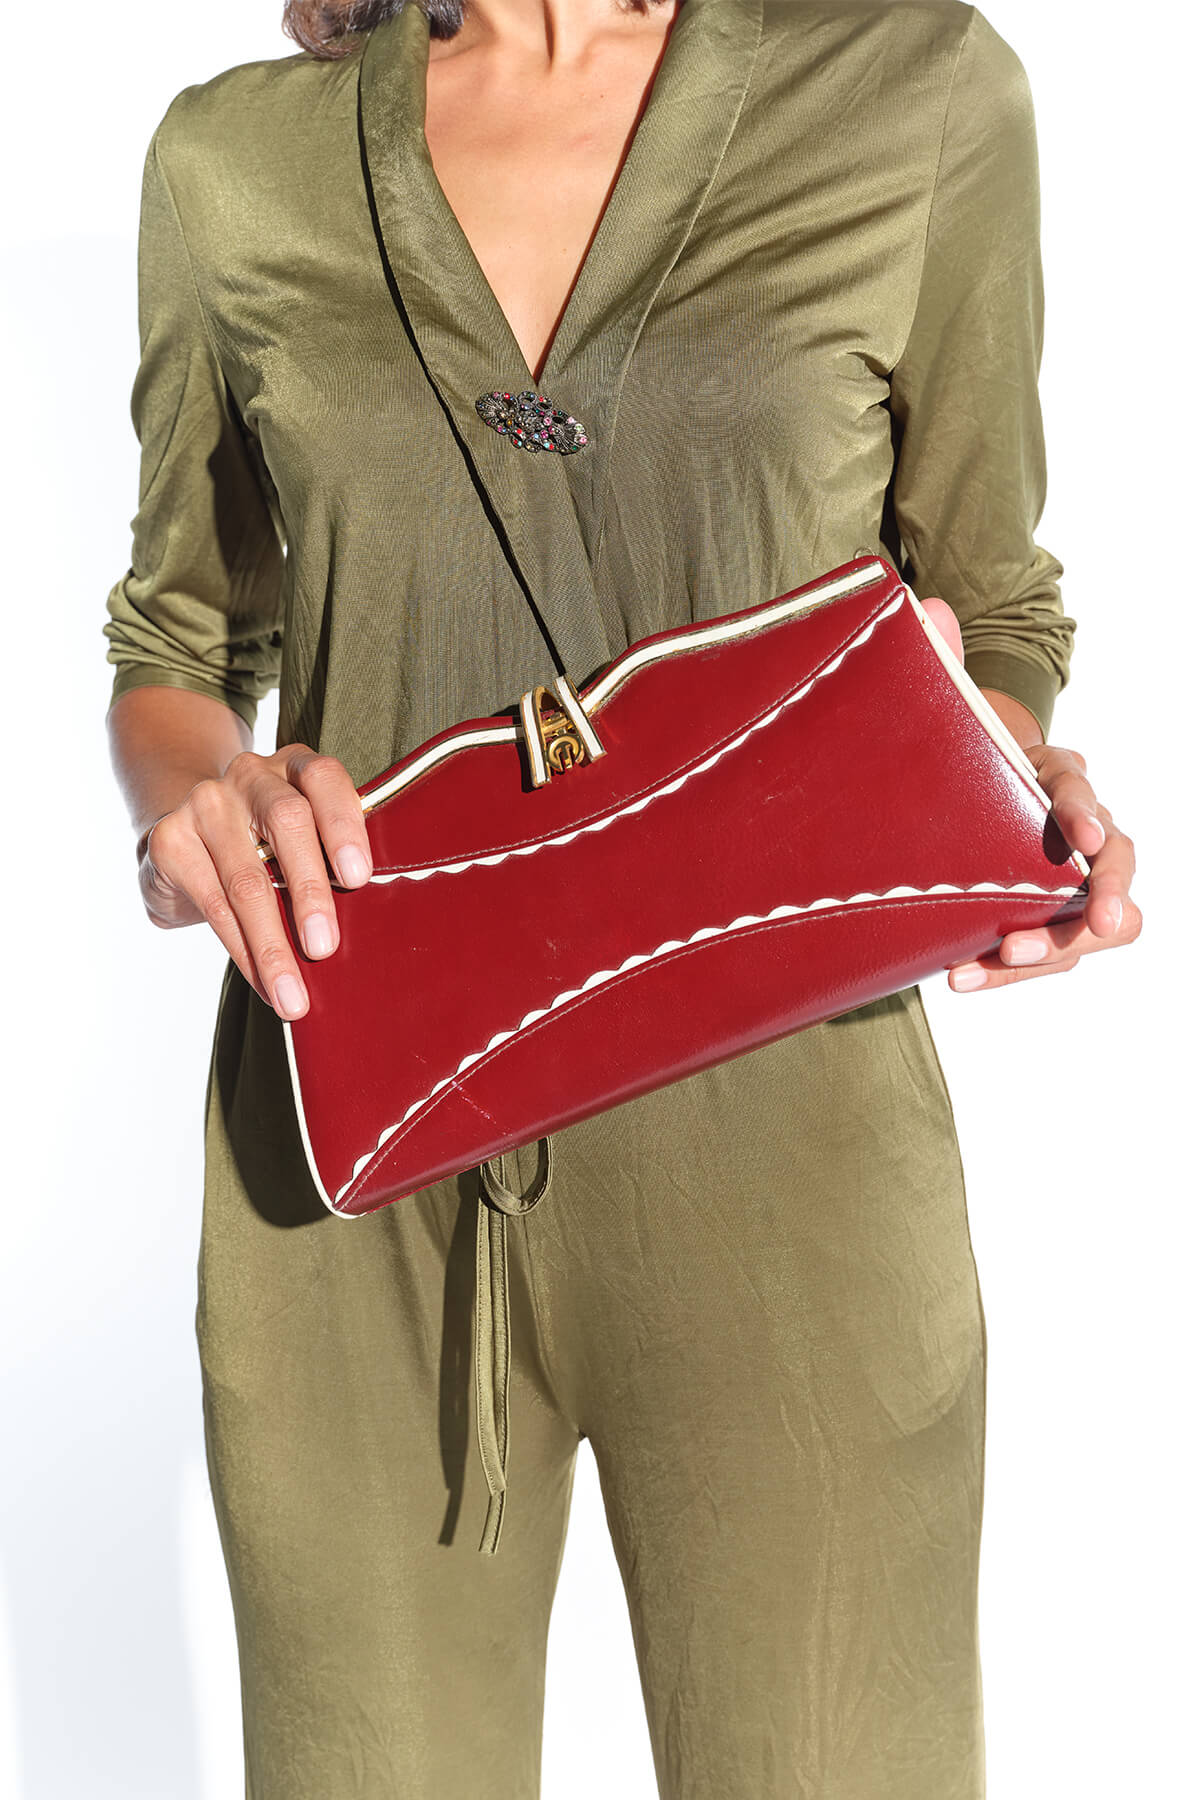 Tipik 80ler bordo clutch çanta